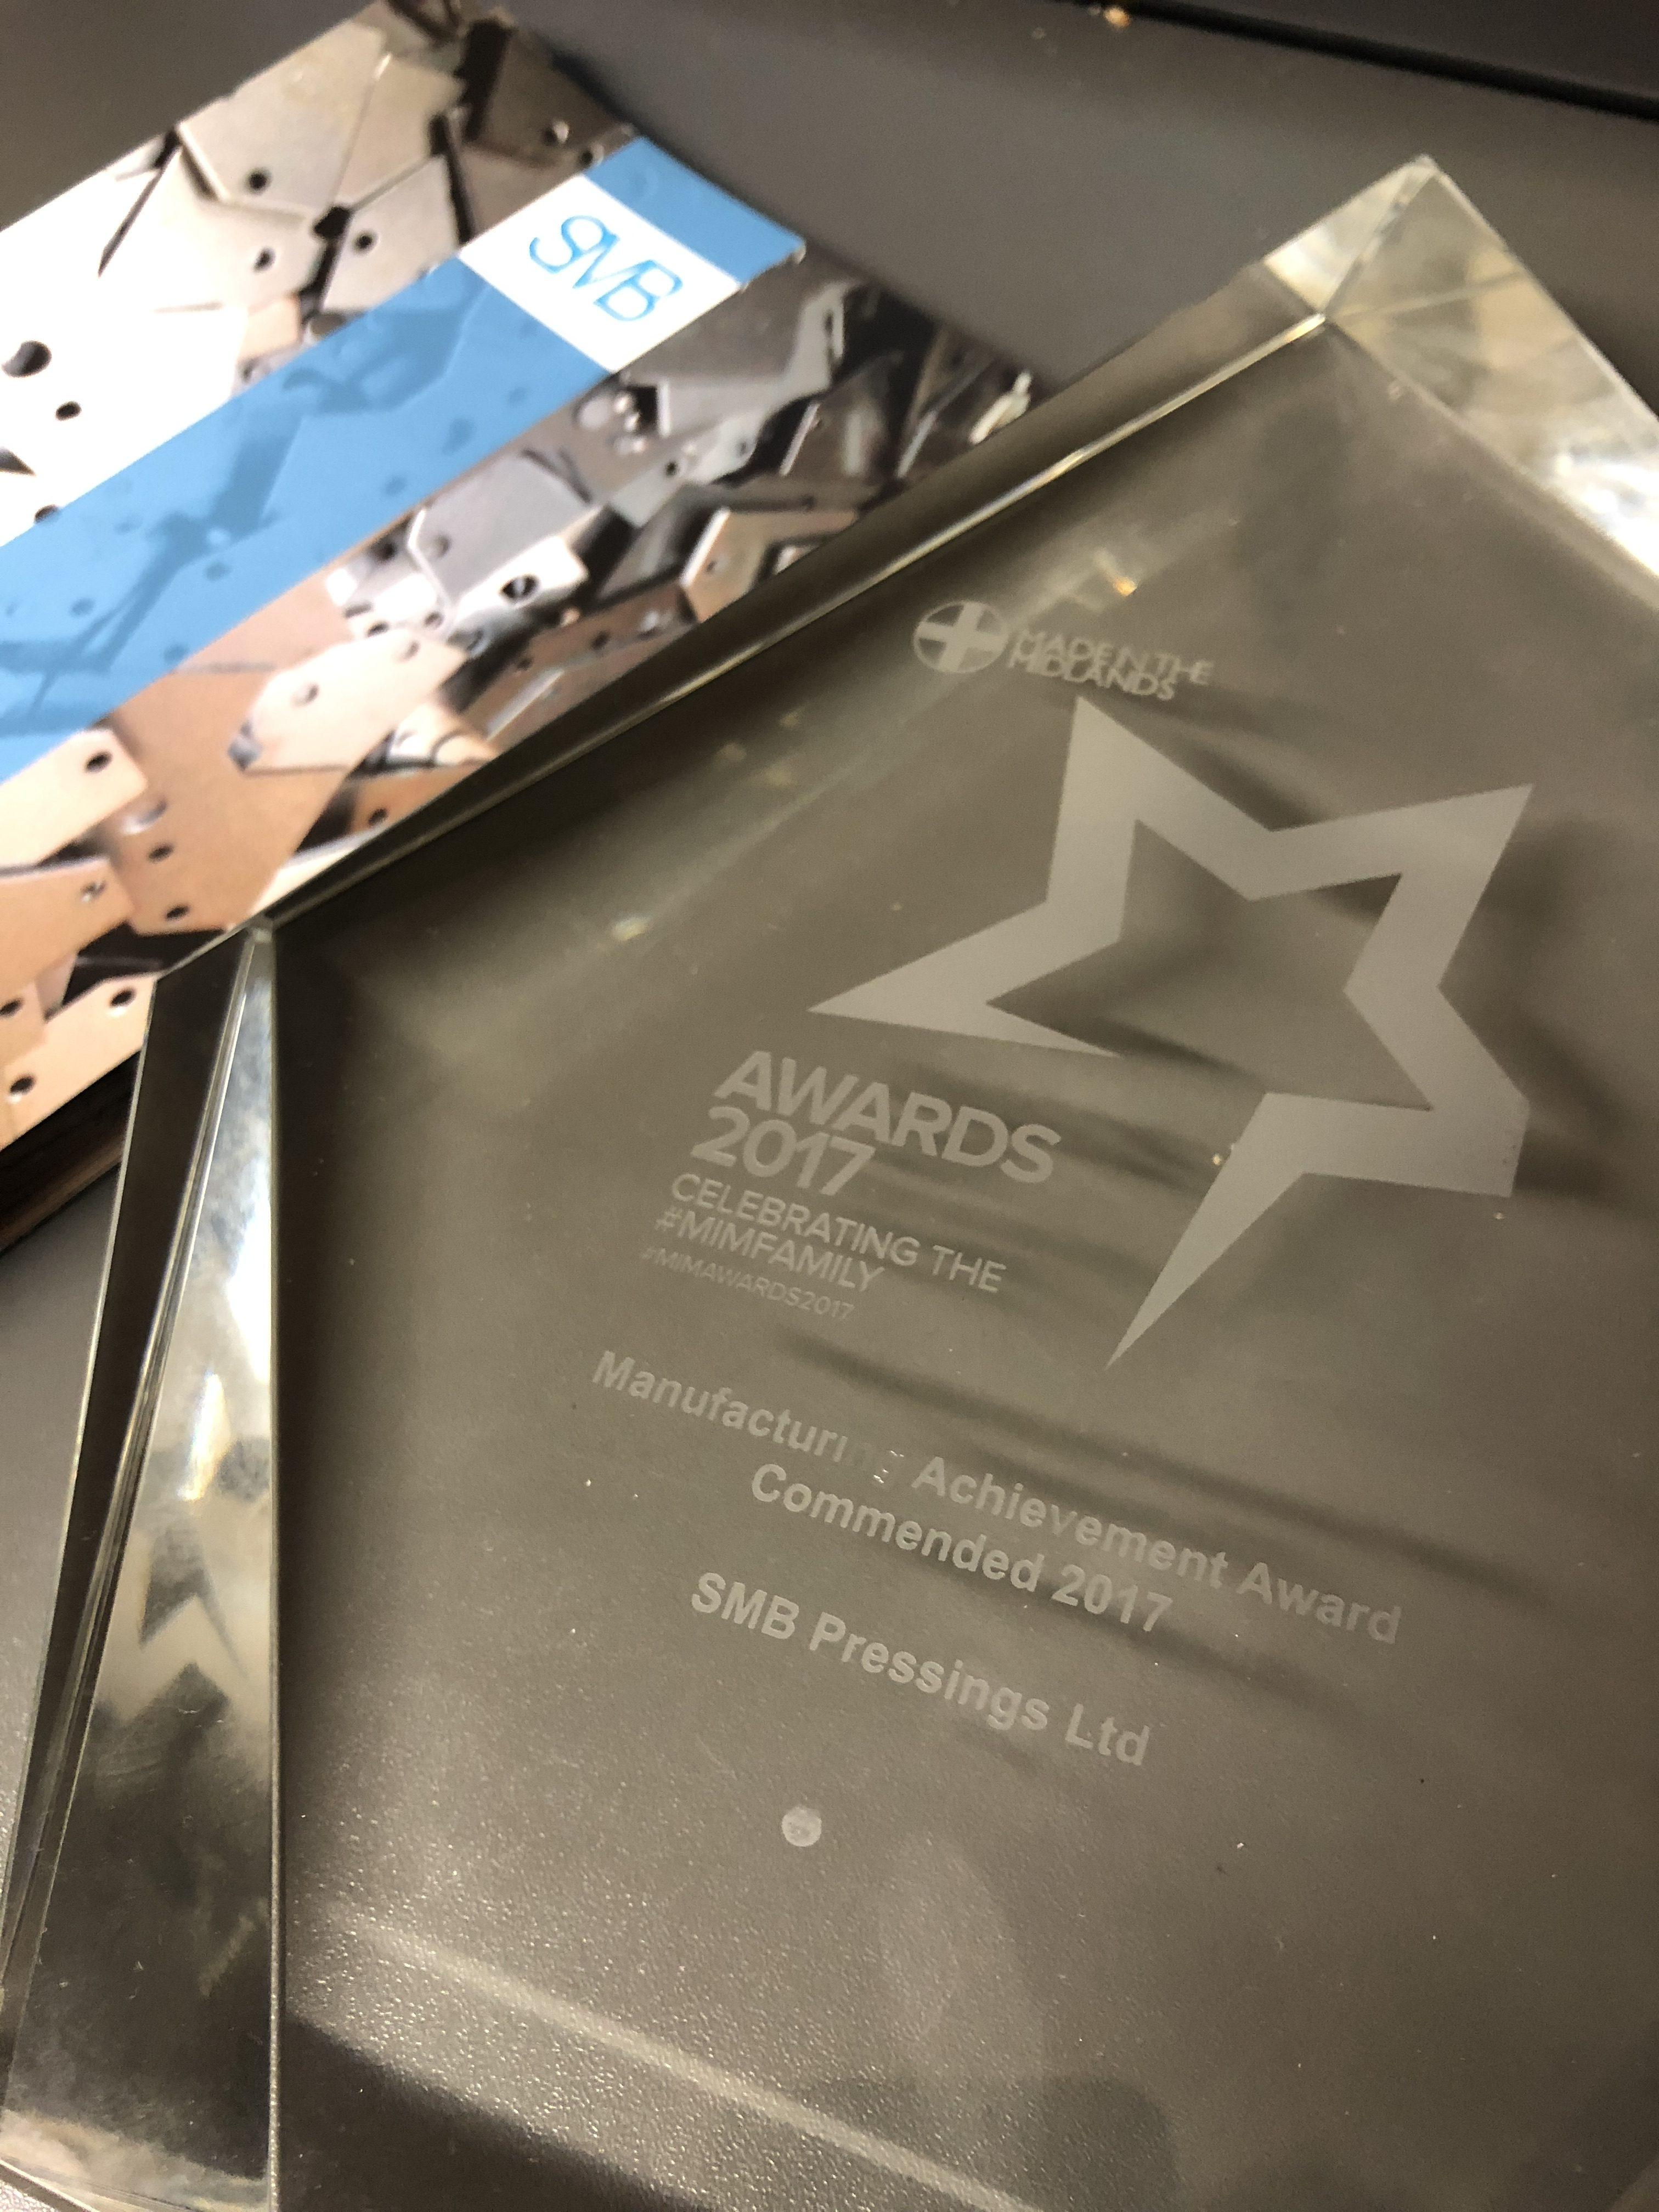 MiM Award - Manufacturing Achievement Award Commended 2017